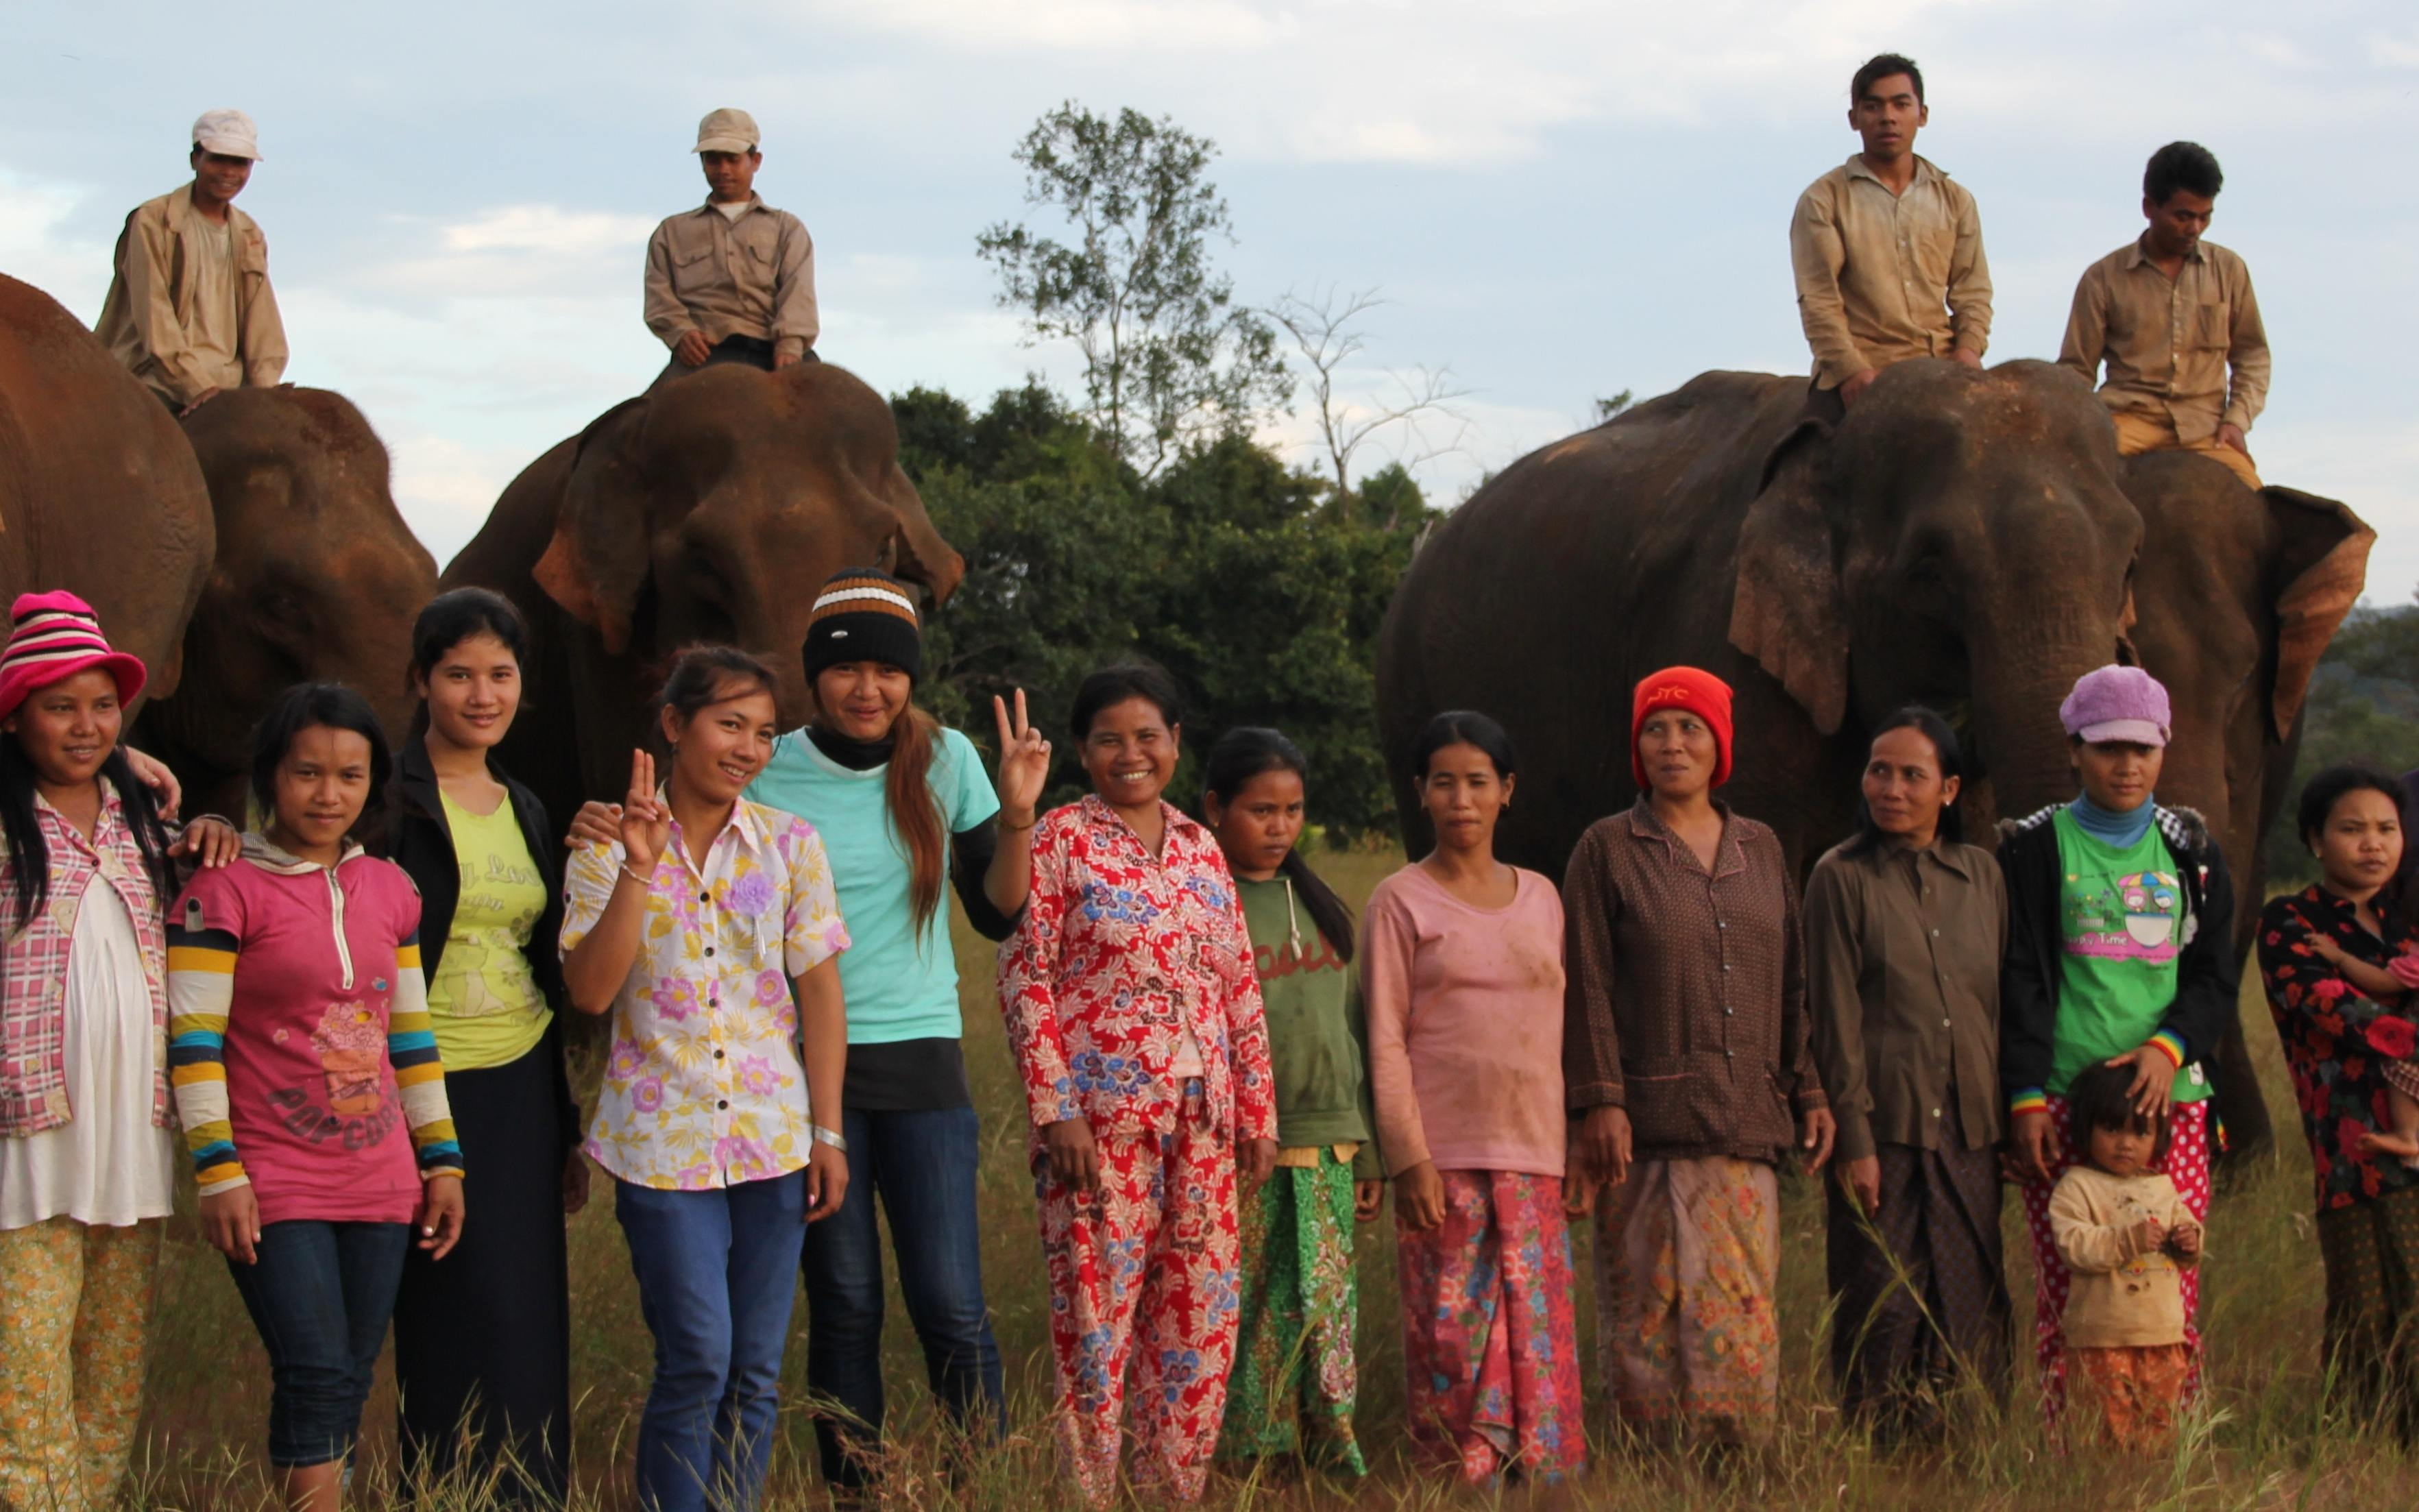 The local Bunong staff and elephants await you at Elephant Valley Project Mondulkiri Cambodia